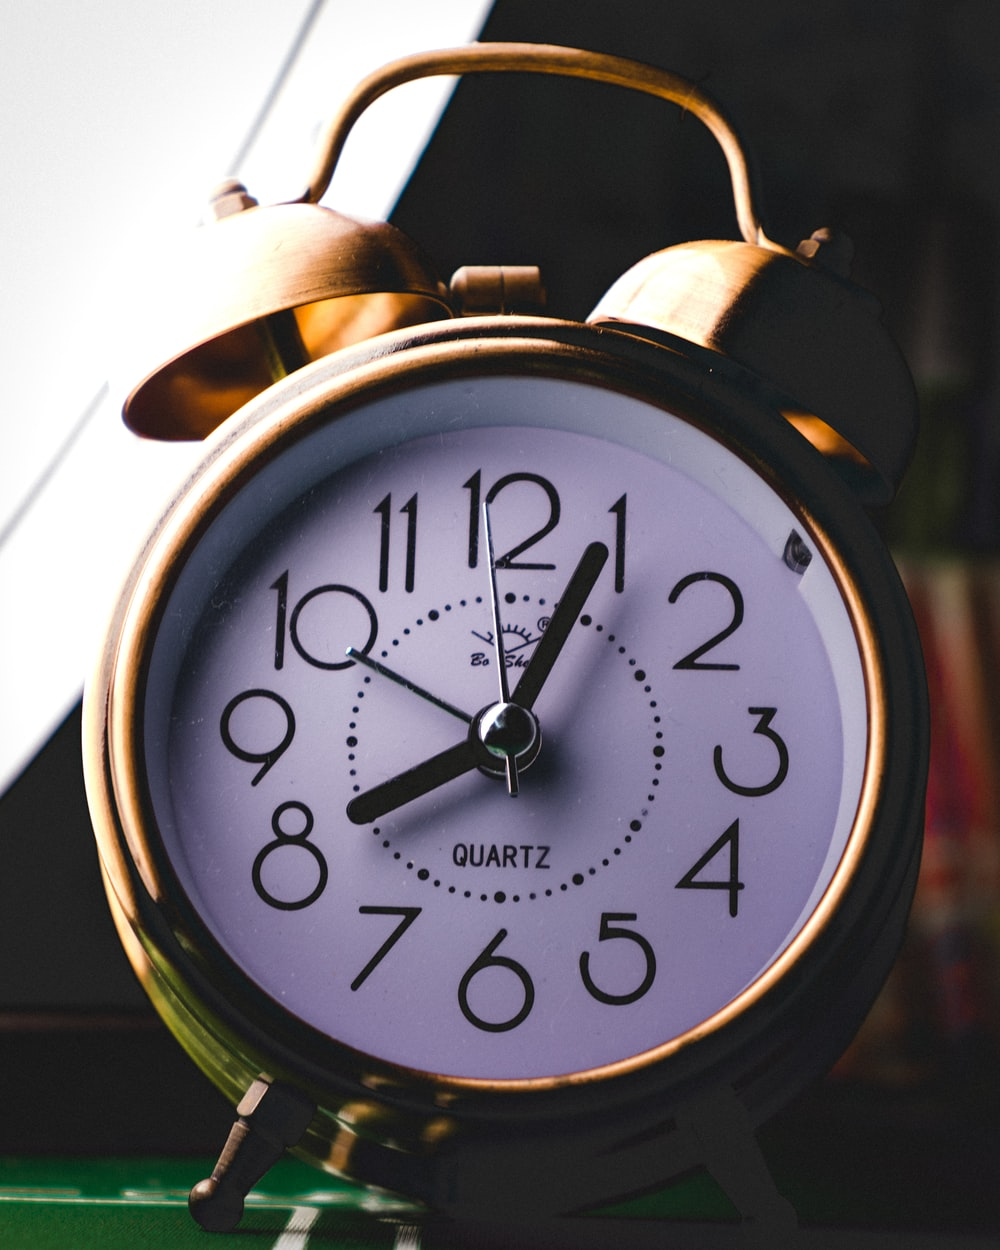 silver twin-bell alarm clock at 8:05